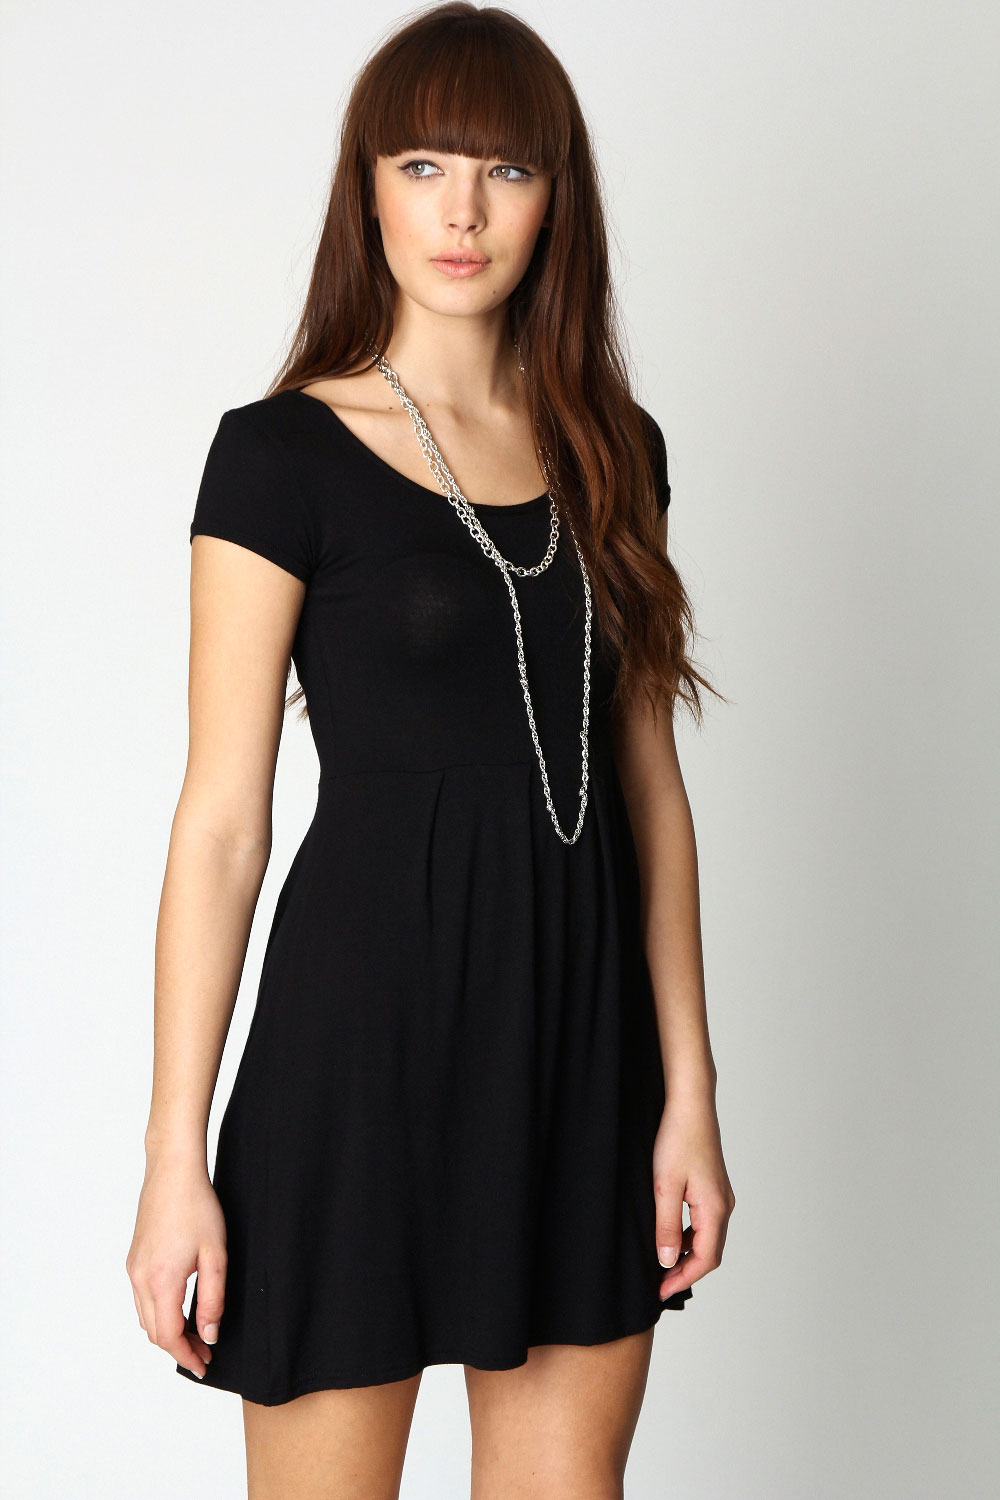 Boohoo-Womens-Ladies-Claudia-Jersey-Cap-Sleeve-Skater-Dress